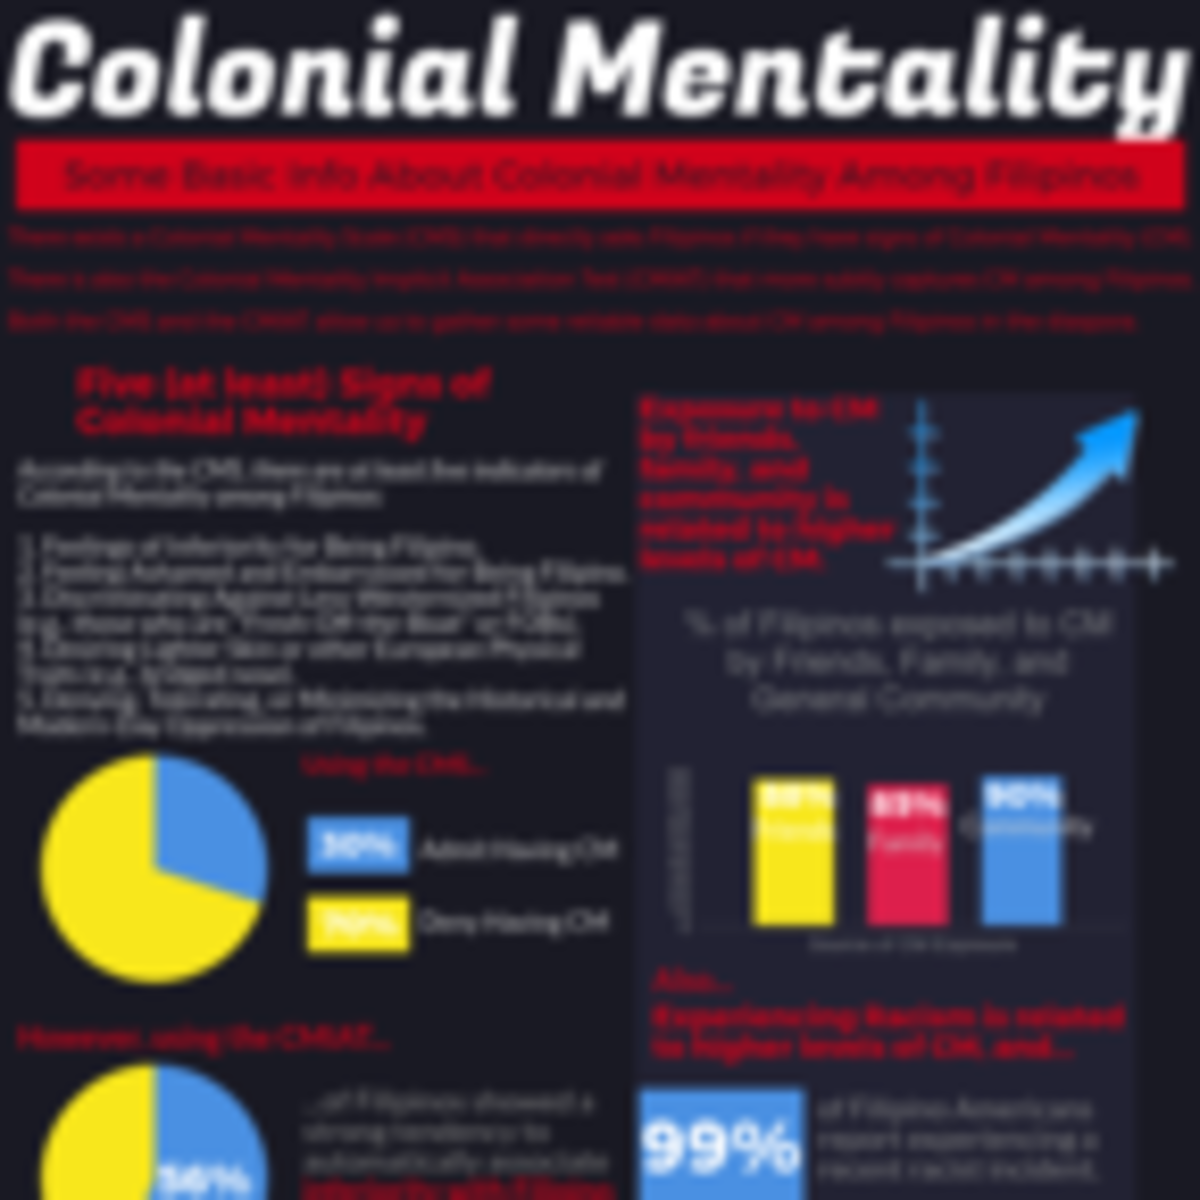 Filipinos, Colonial Mentality, and Mental Health | Psychology Today